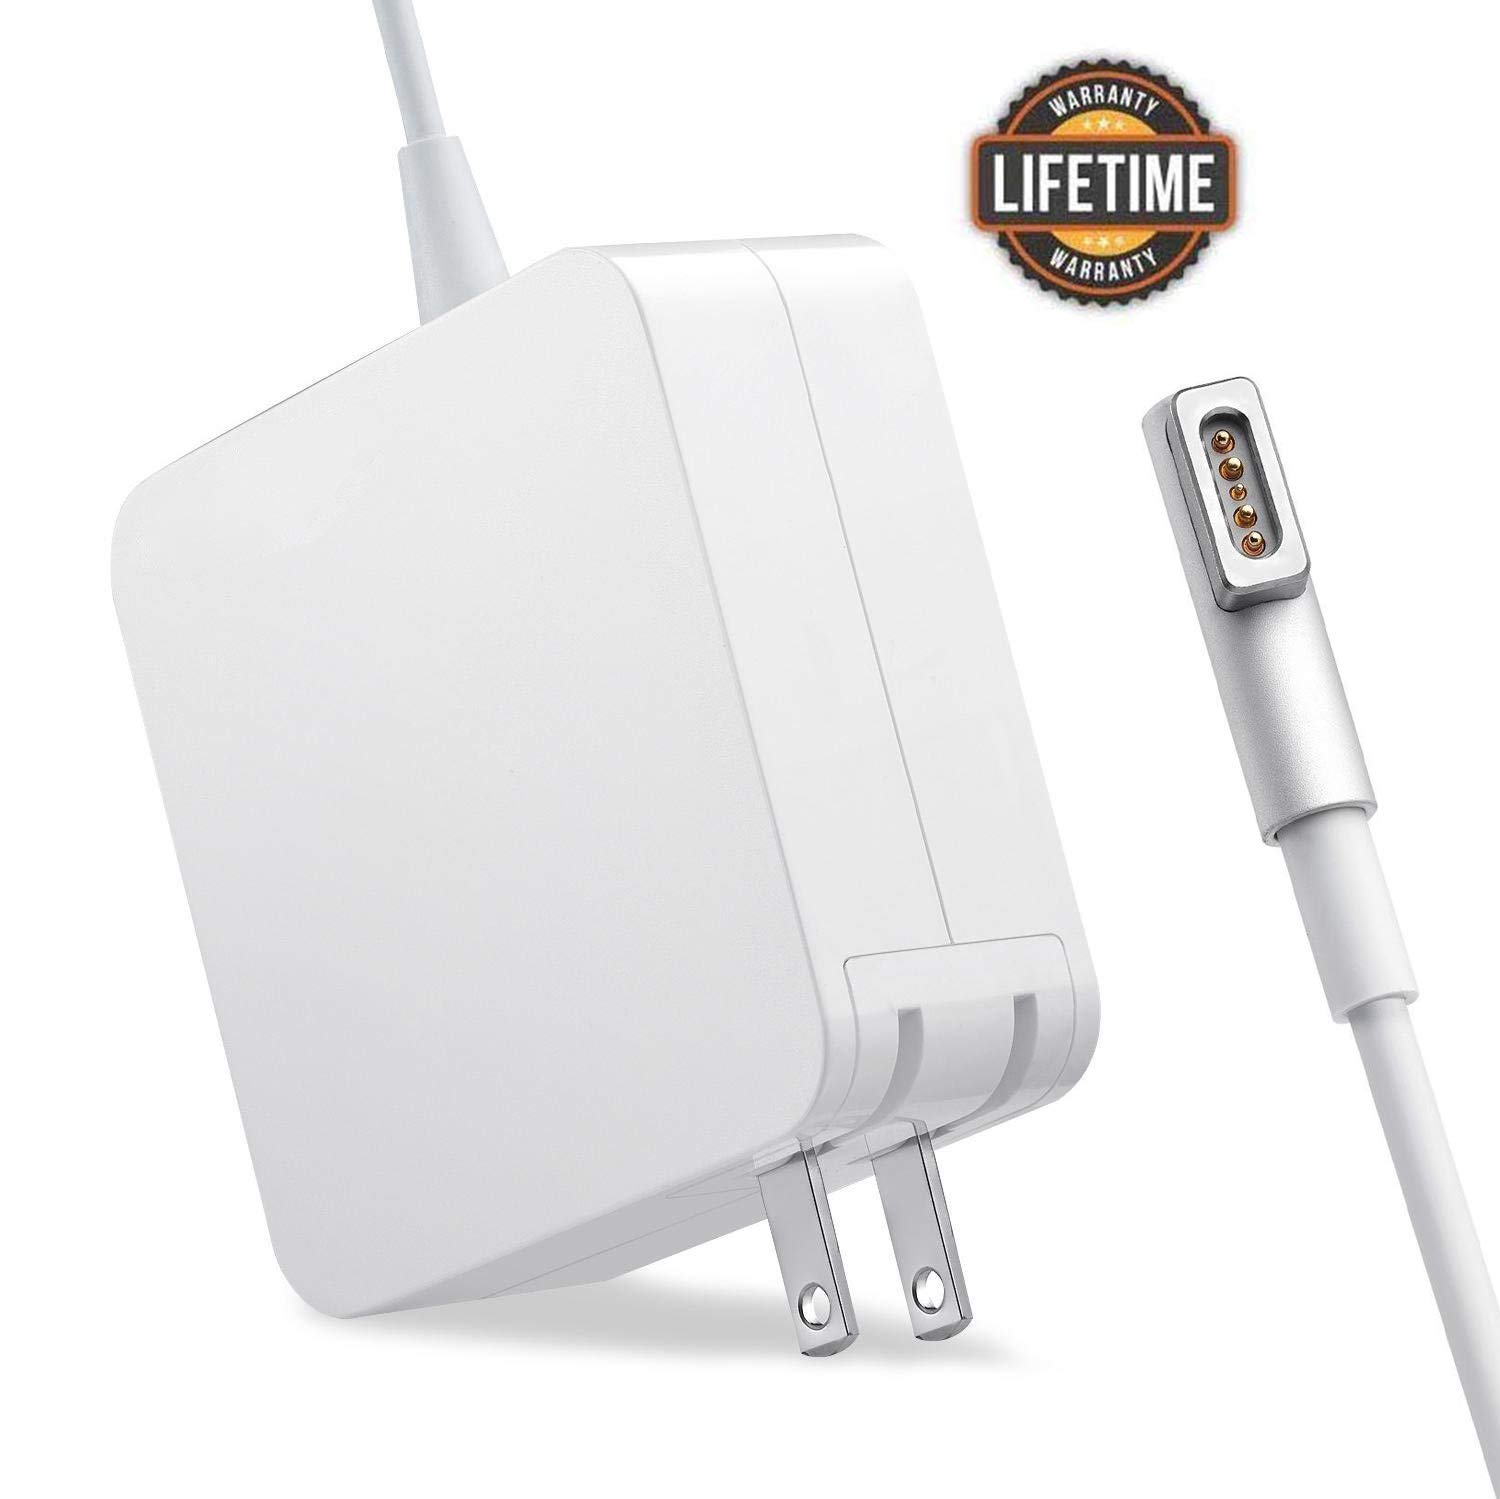 Mac Book Pro Charger, for MacBook Pro Charger 60W Magsafe L-Tip Power Adapter for MacBook Pro 13-inch (Before Mid 2012) (White) by LOT-Y